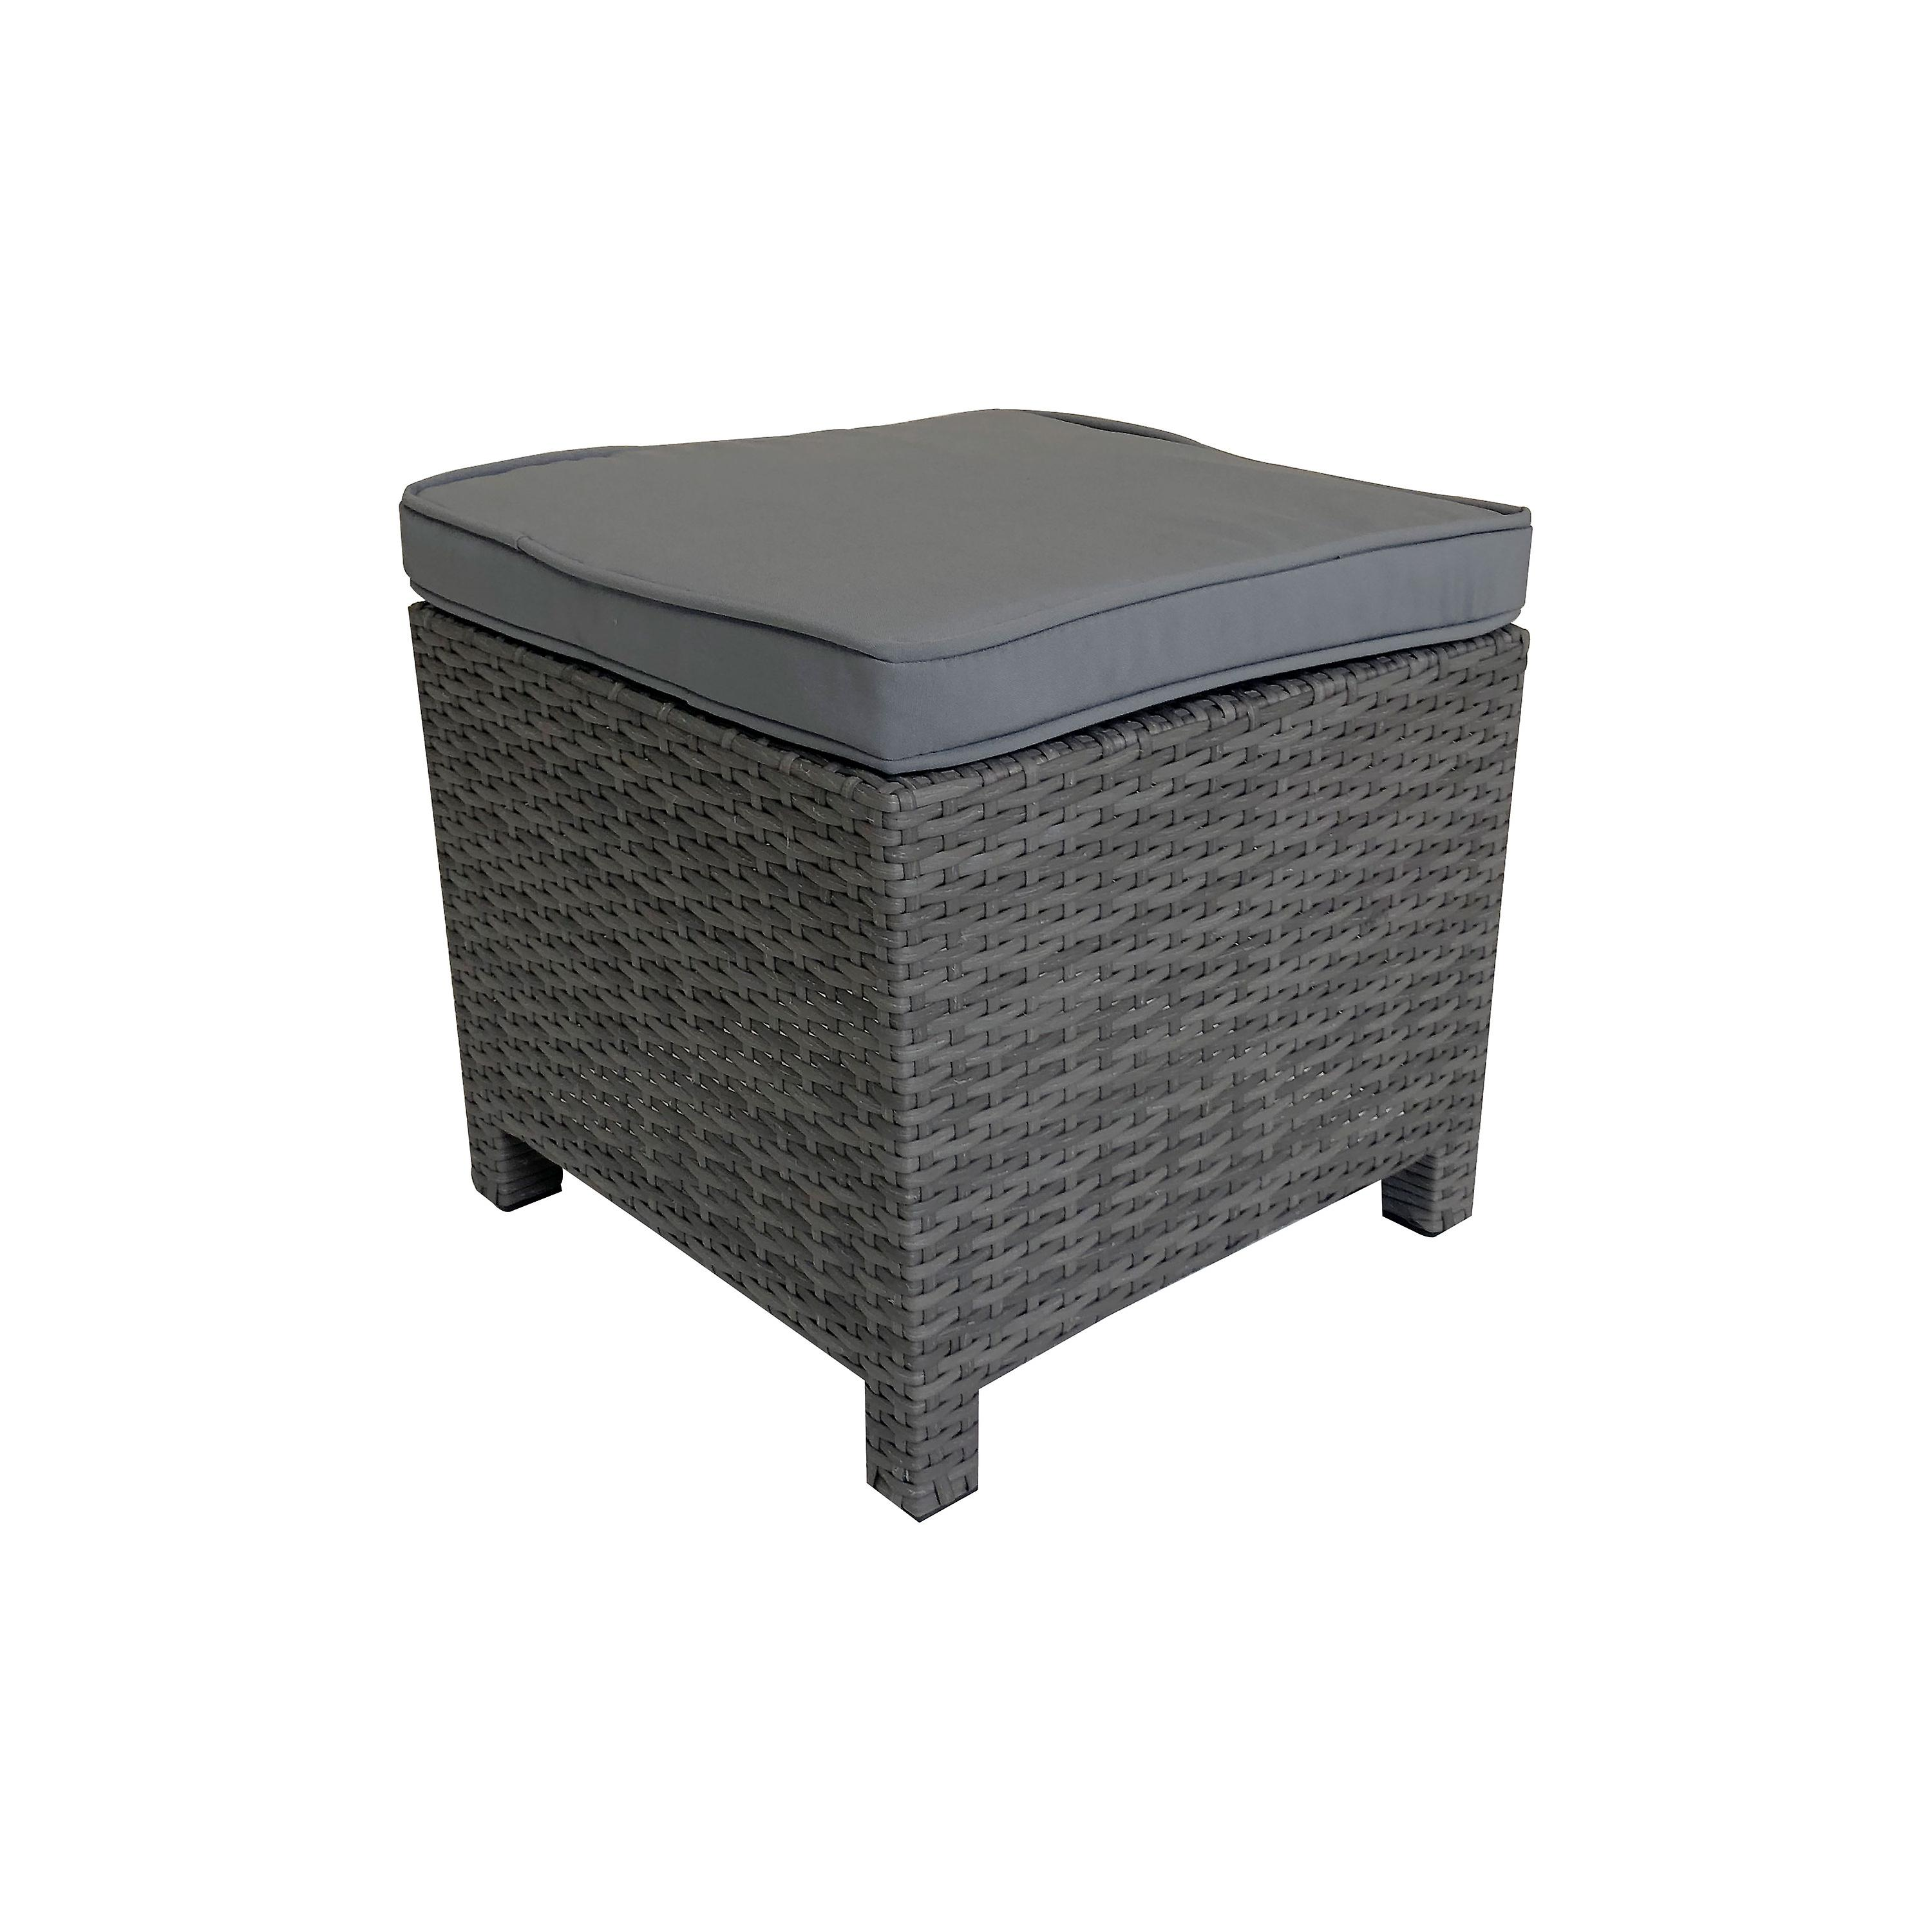 Grey SetIn Polywood Charles Bentley Cube Dining Rattanamp; H9IWE2D